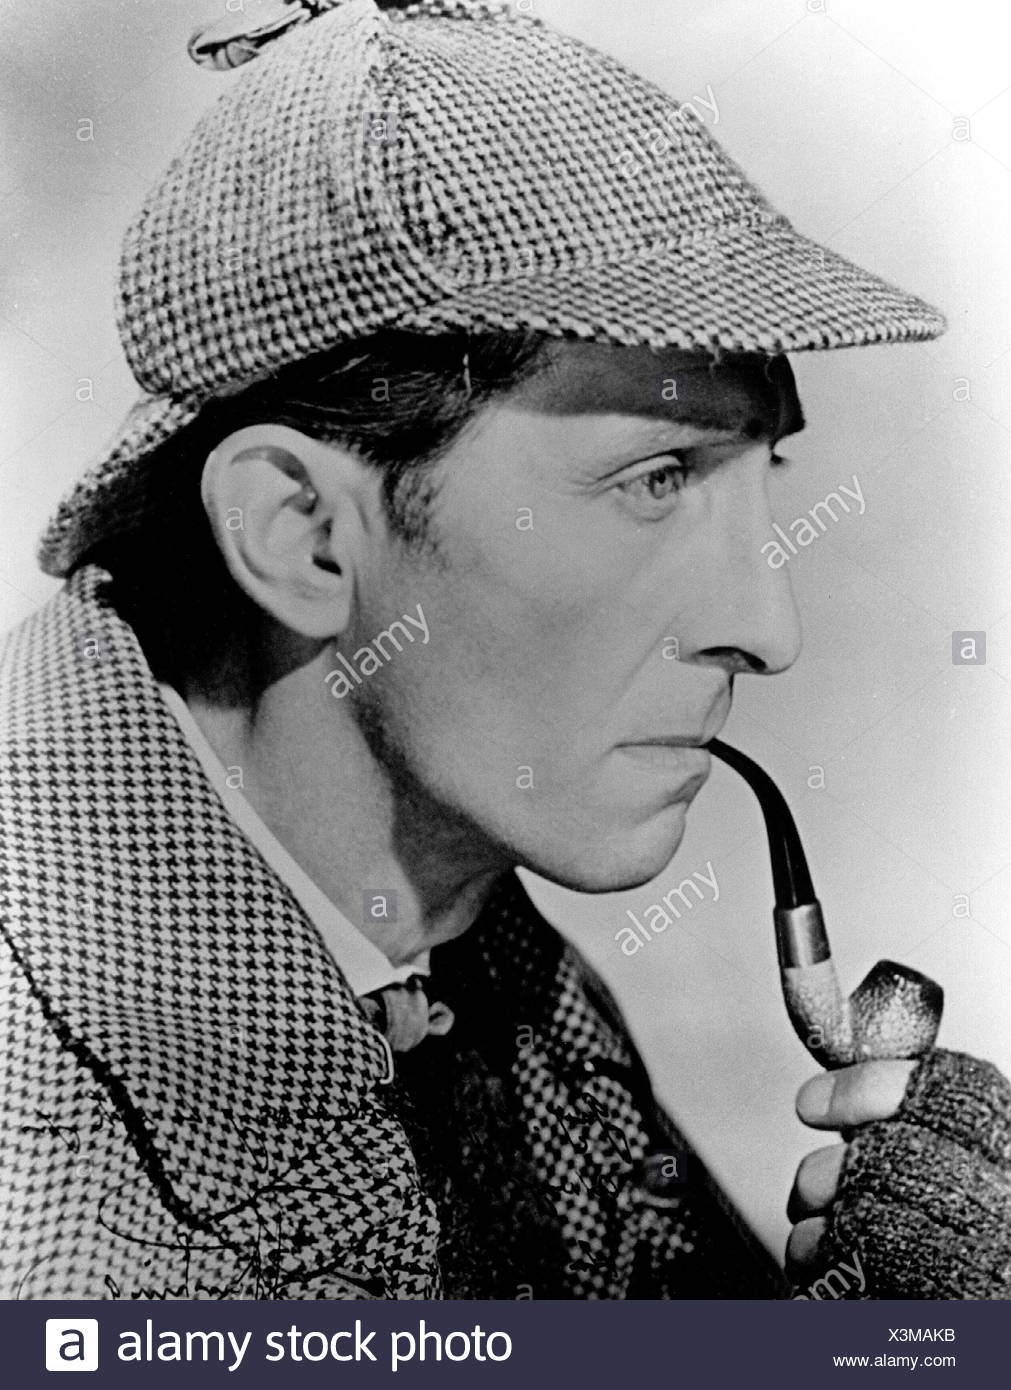 Sherlock Holmes, literary character by Sir Arthur Conan Doyle, Peter Cushing as the detective in 'The Hound of the Baskervilles', portrait, side view, 1958, Additional-Rights-Clearances-NA - Stock Image